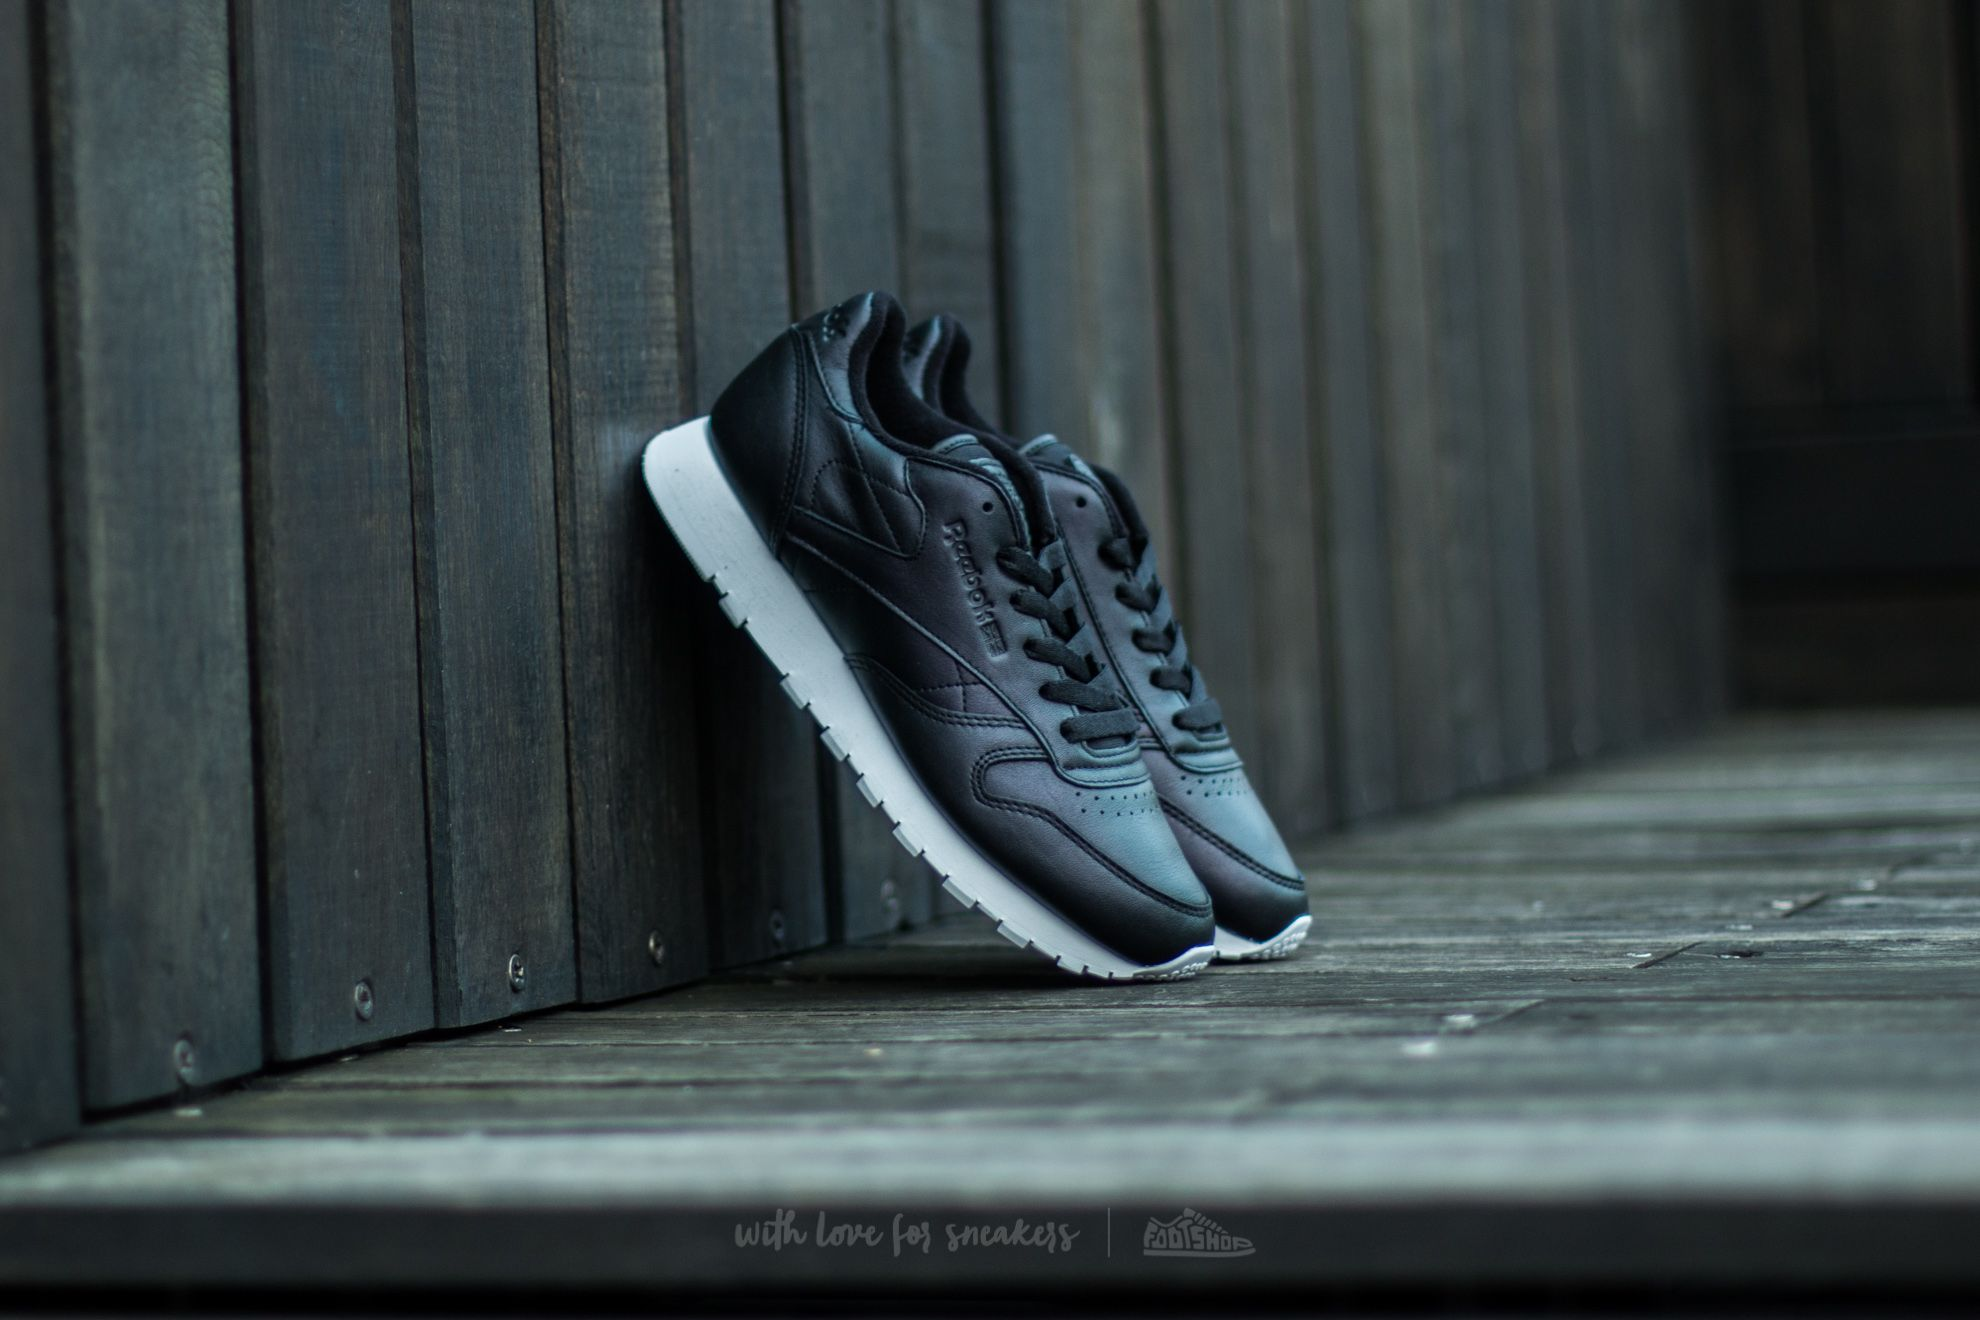 Reebok Classic Leather Pearlized Black/ White